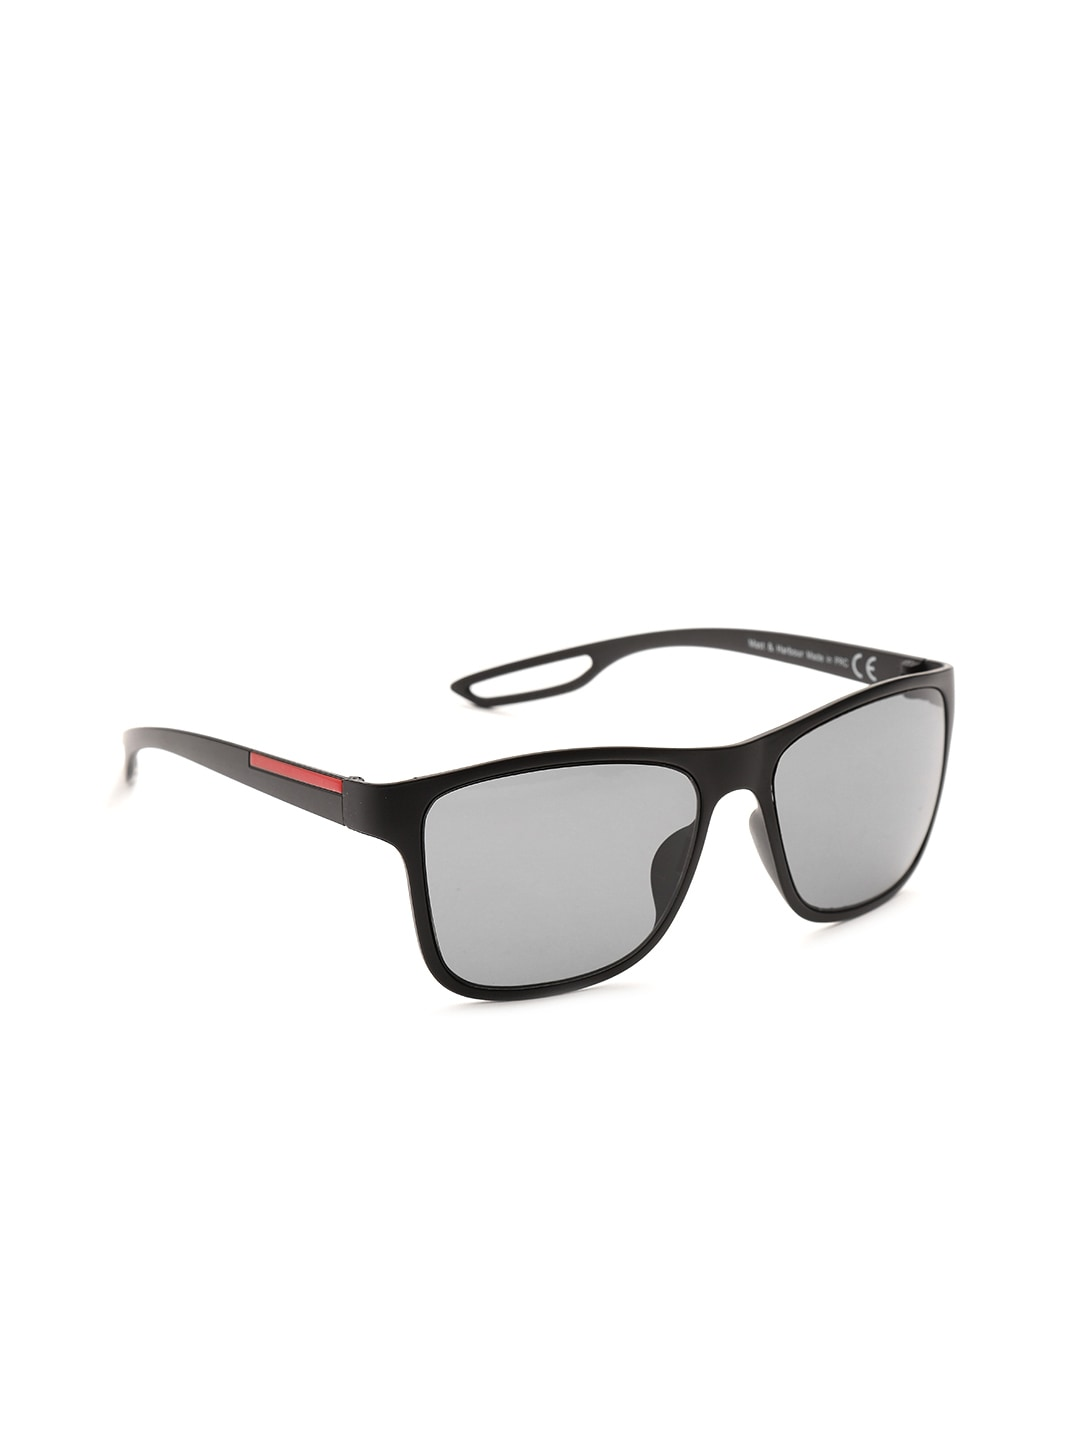 ebc7caef4d47b Sunglasses For Men - Buy Mens Sunglasses Online in India